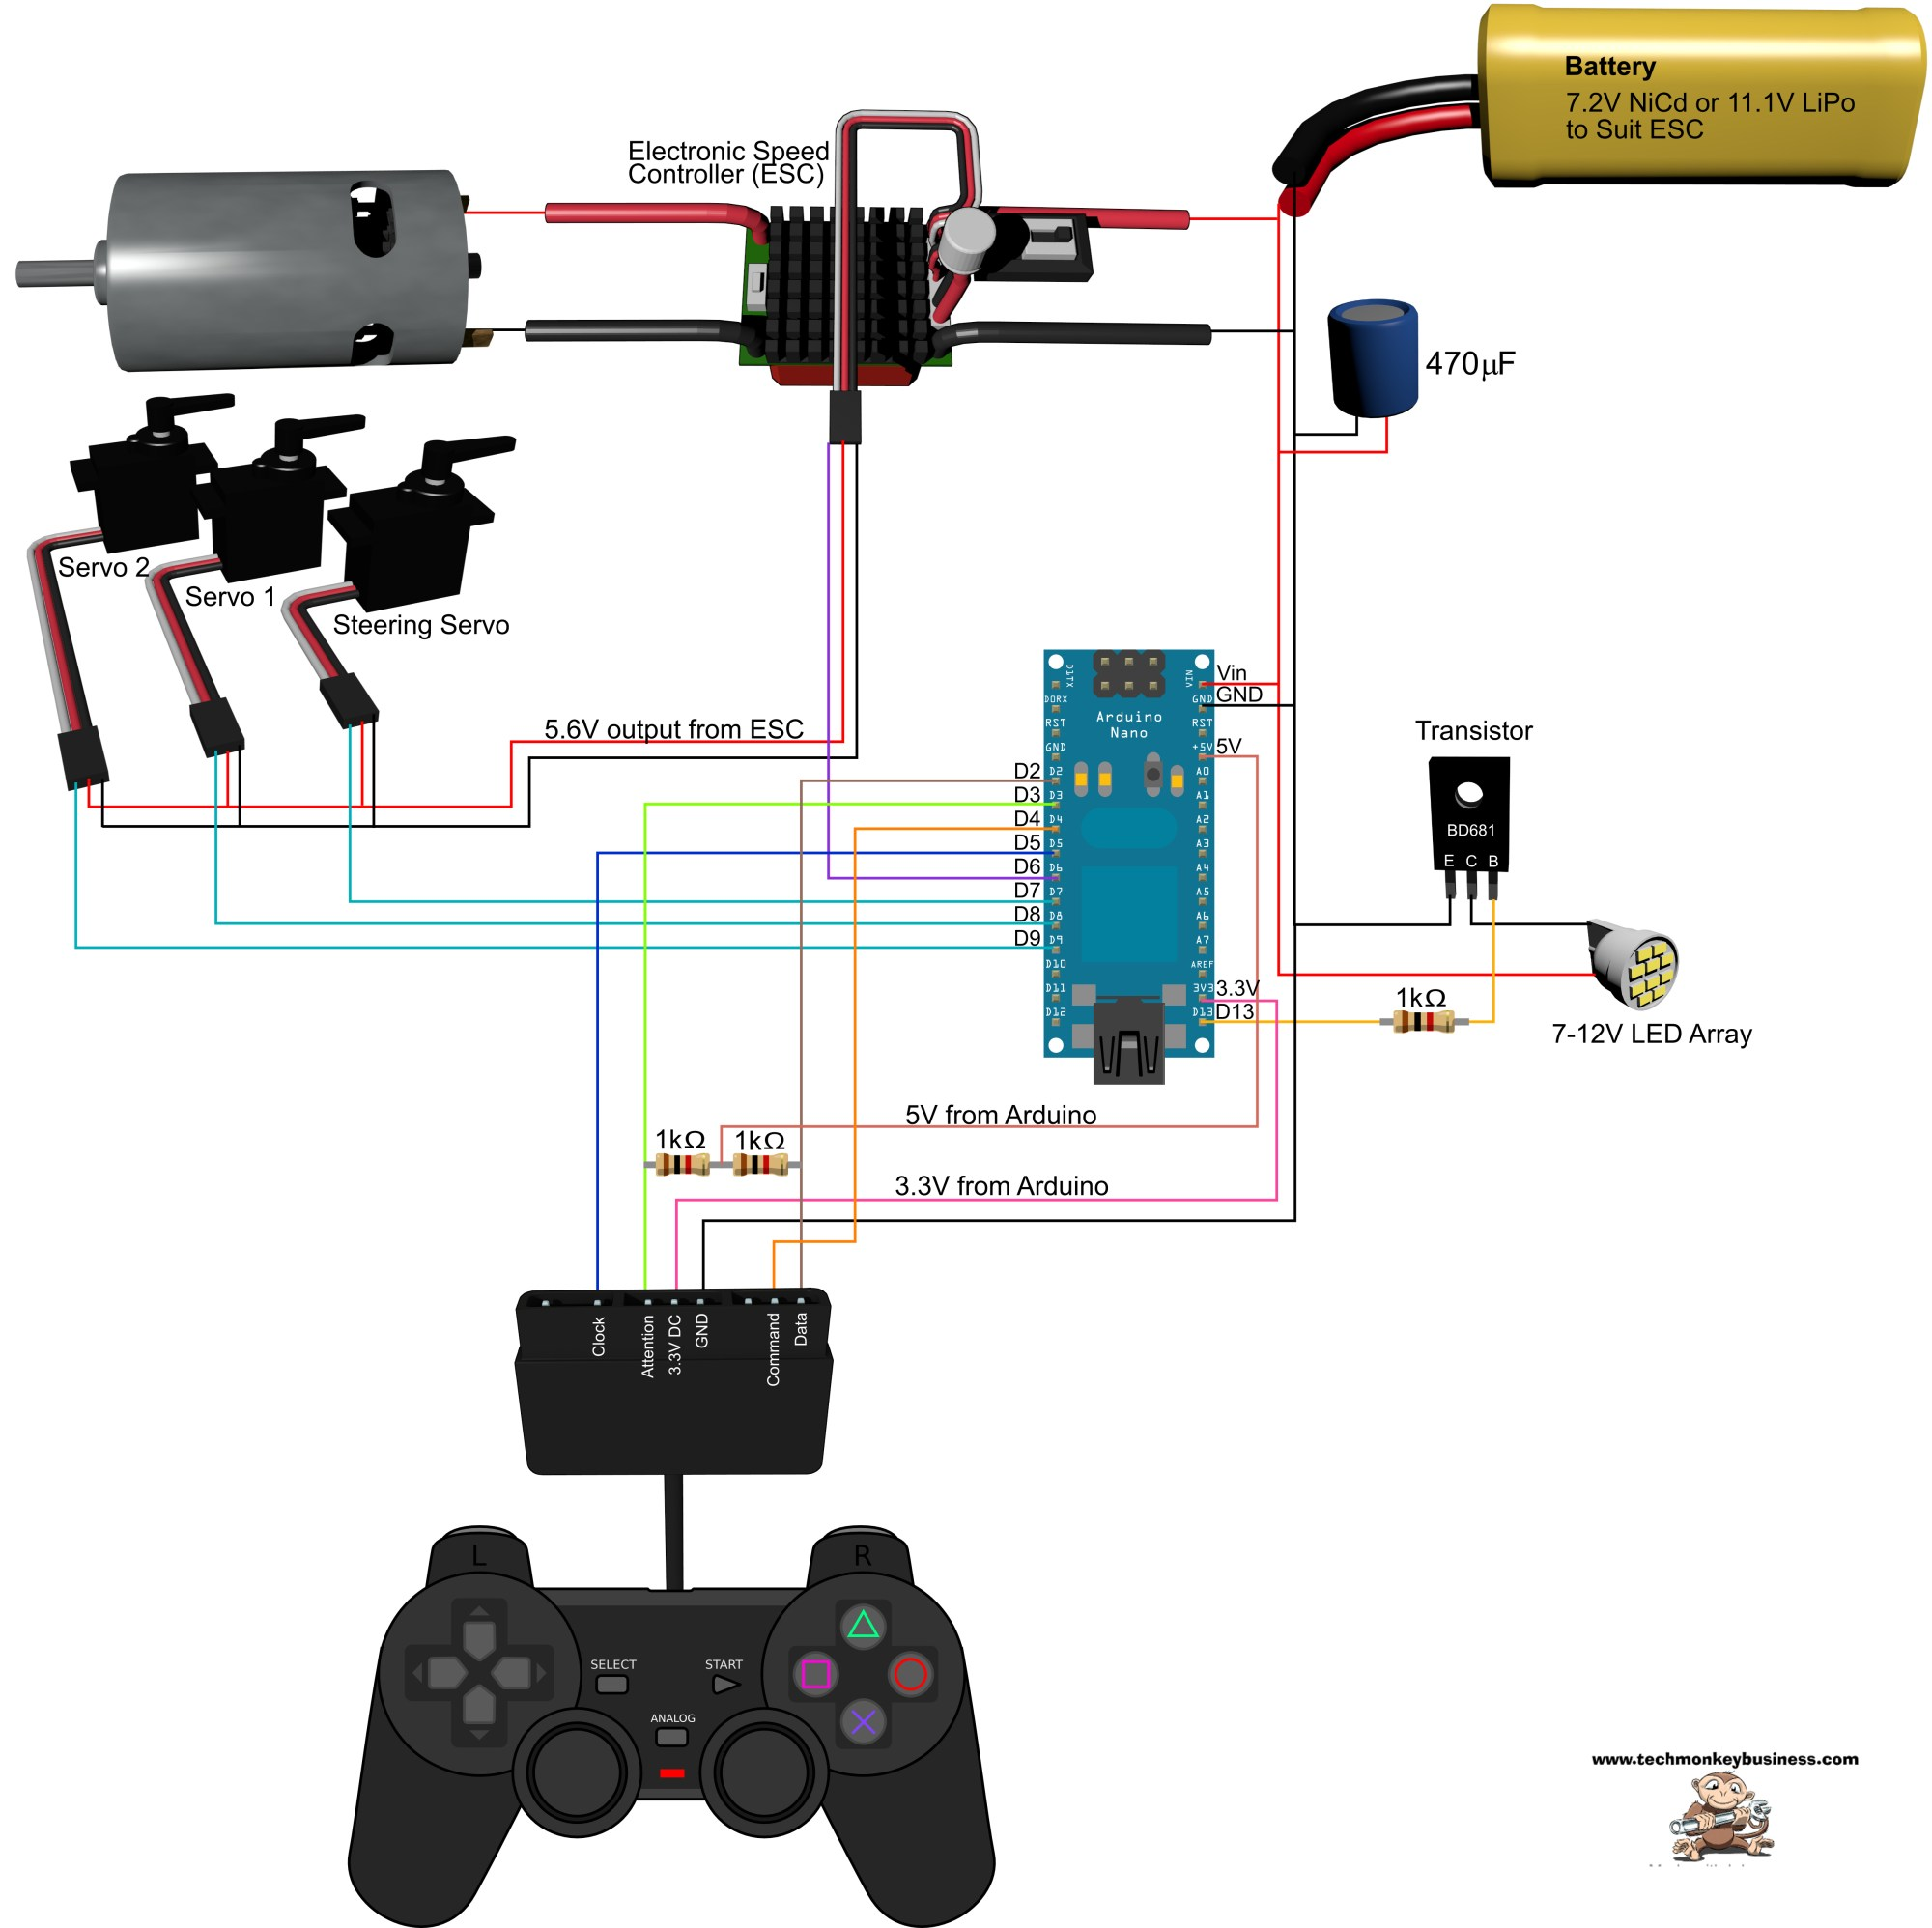 hight resolution of circuit diagram of the ps2 controller demonstration rig